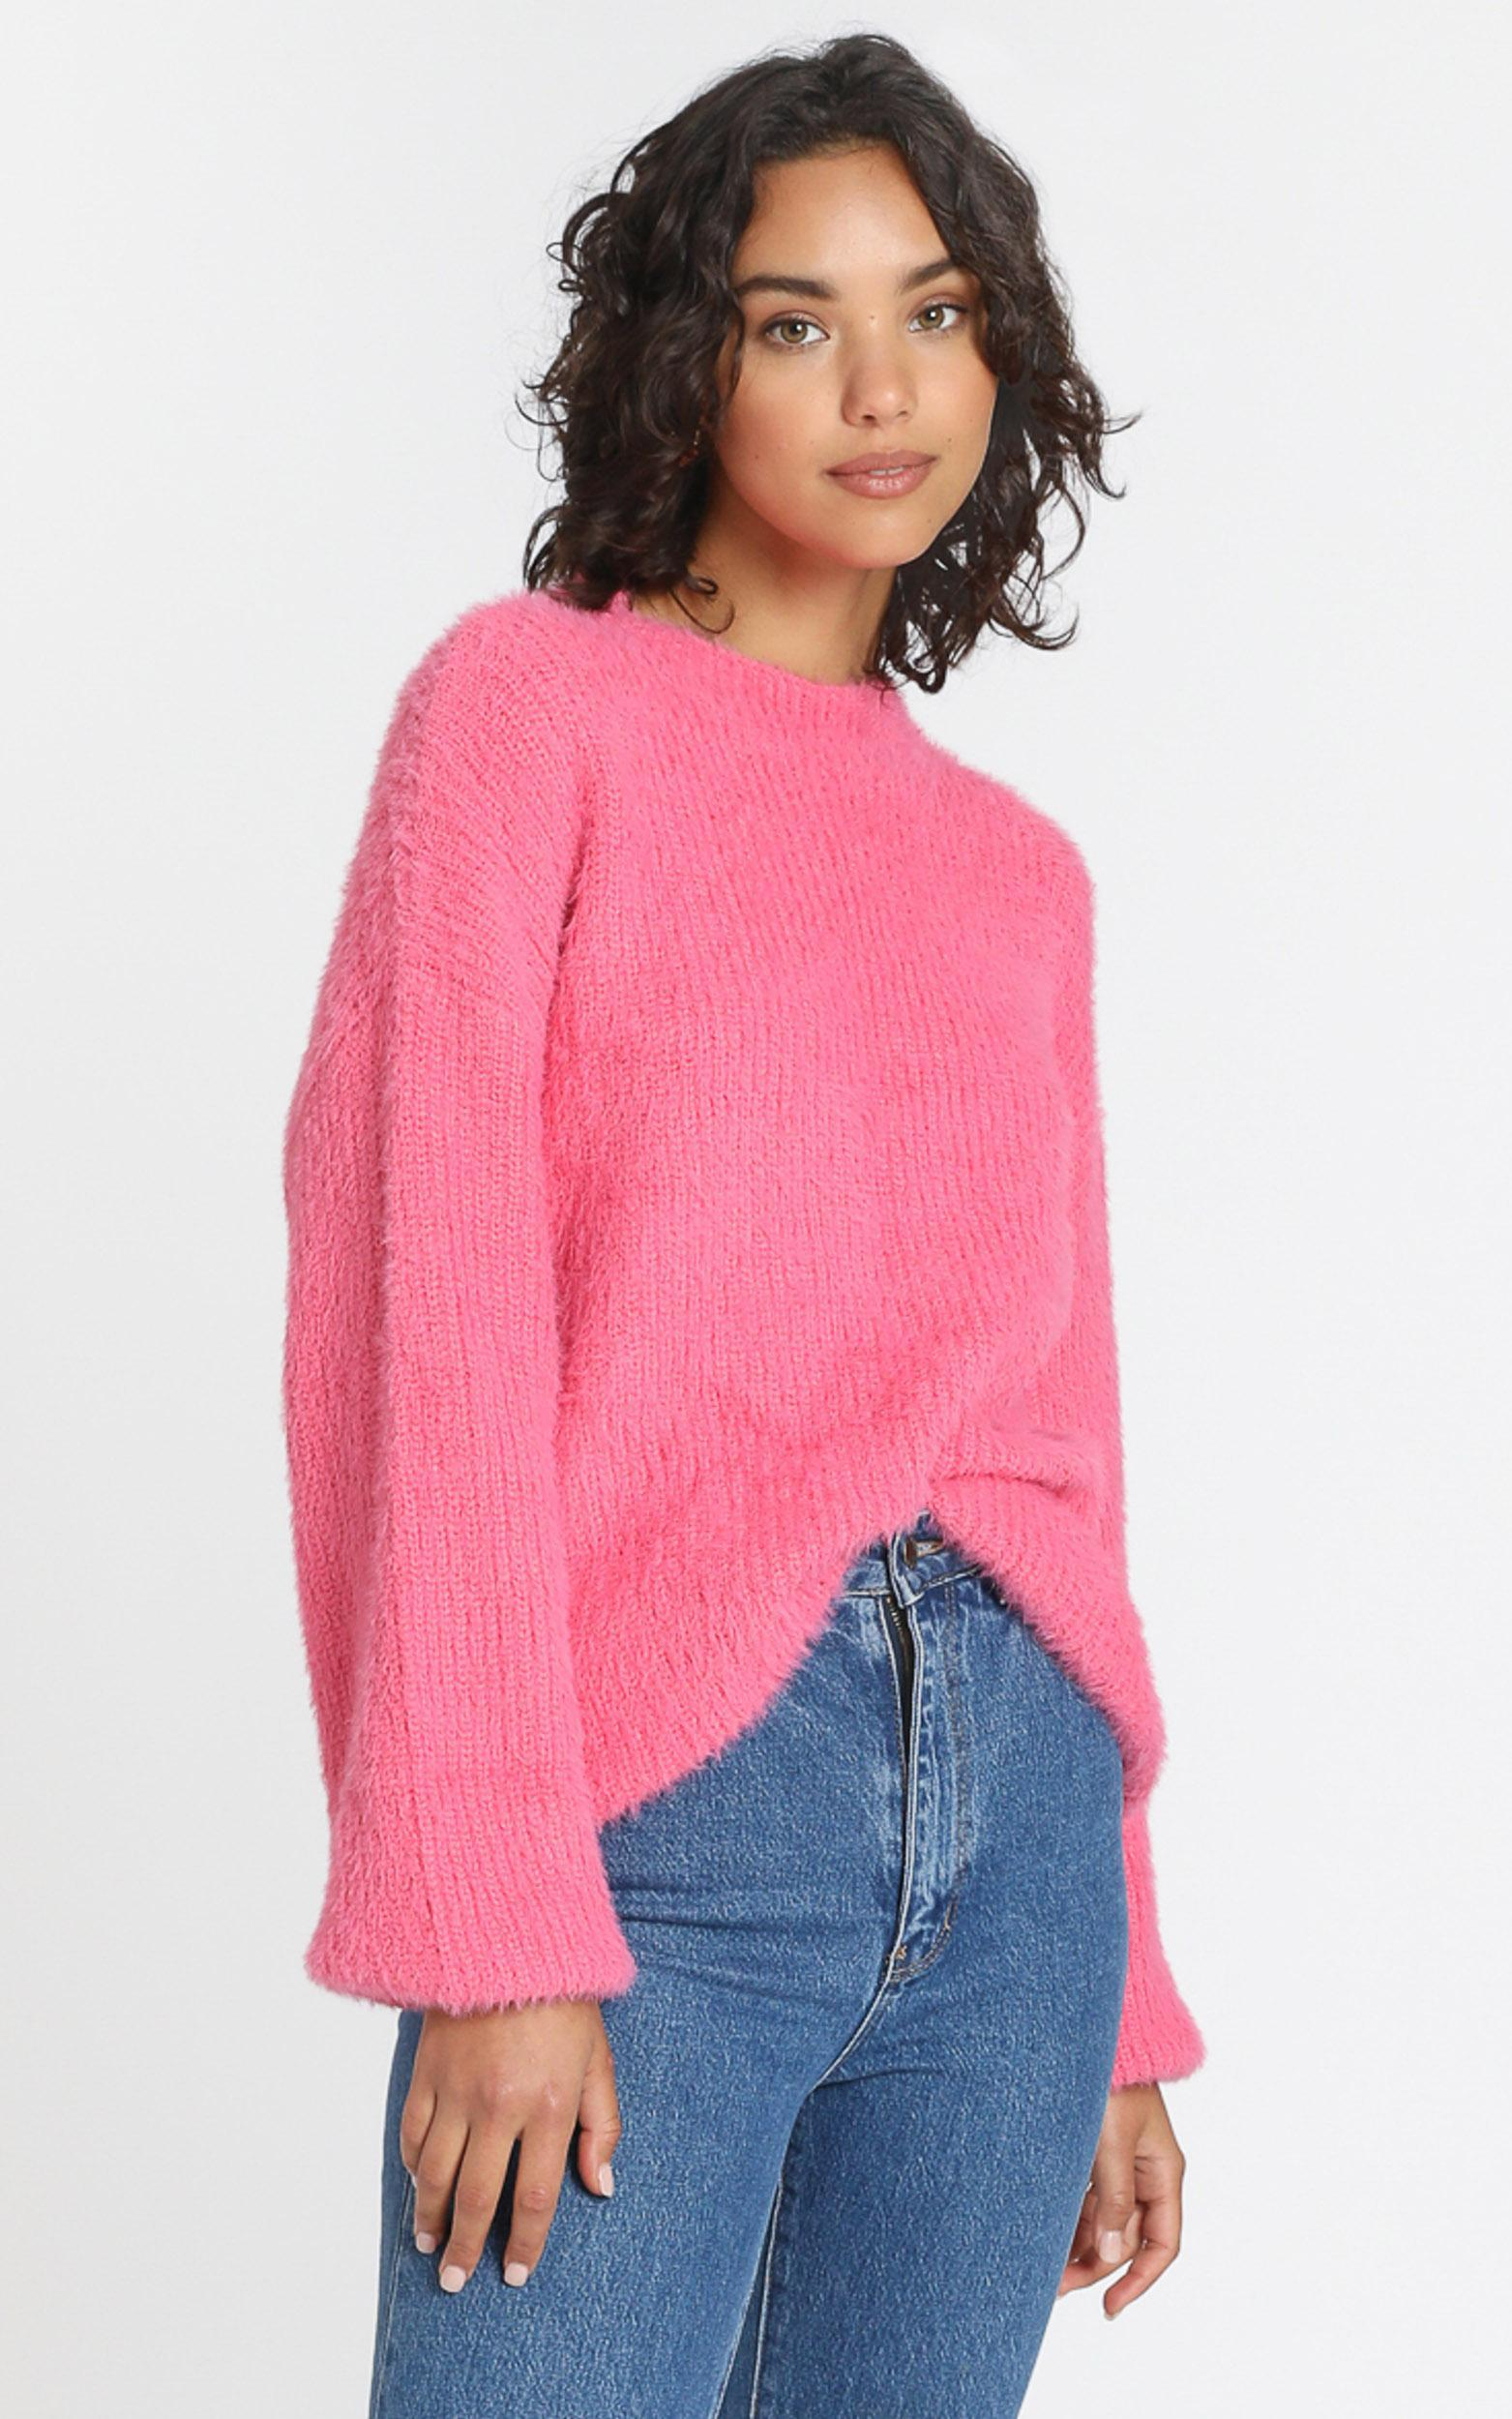 Elle Woods Knit Jumper in candyfloss - XS, Pink, hi-res image number null